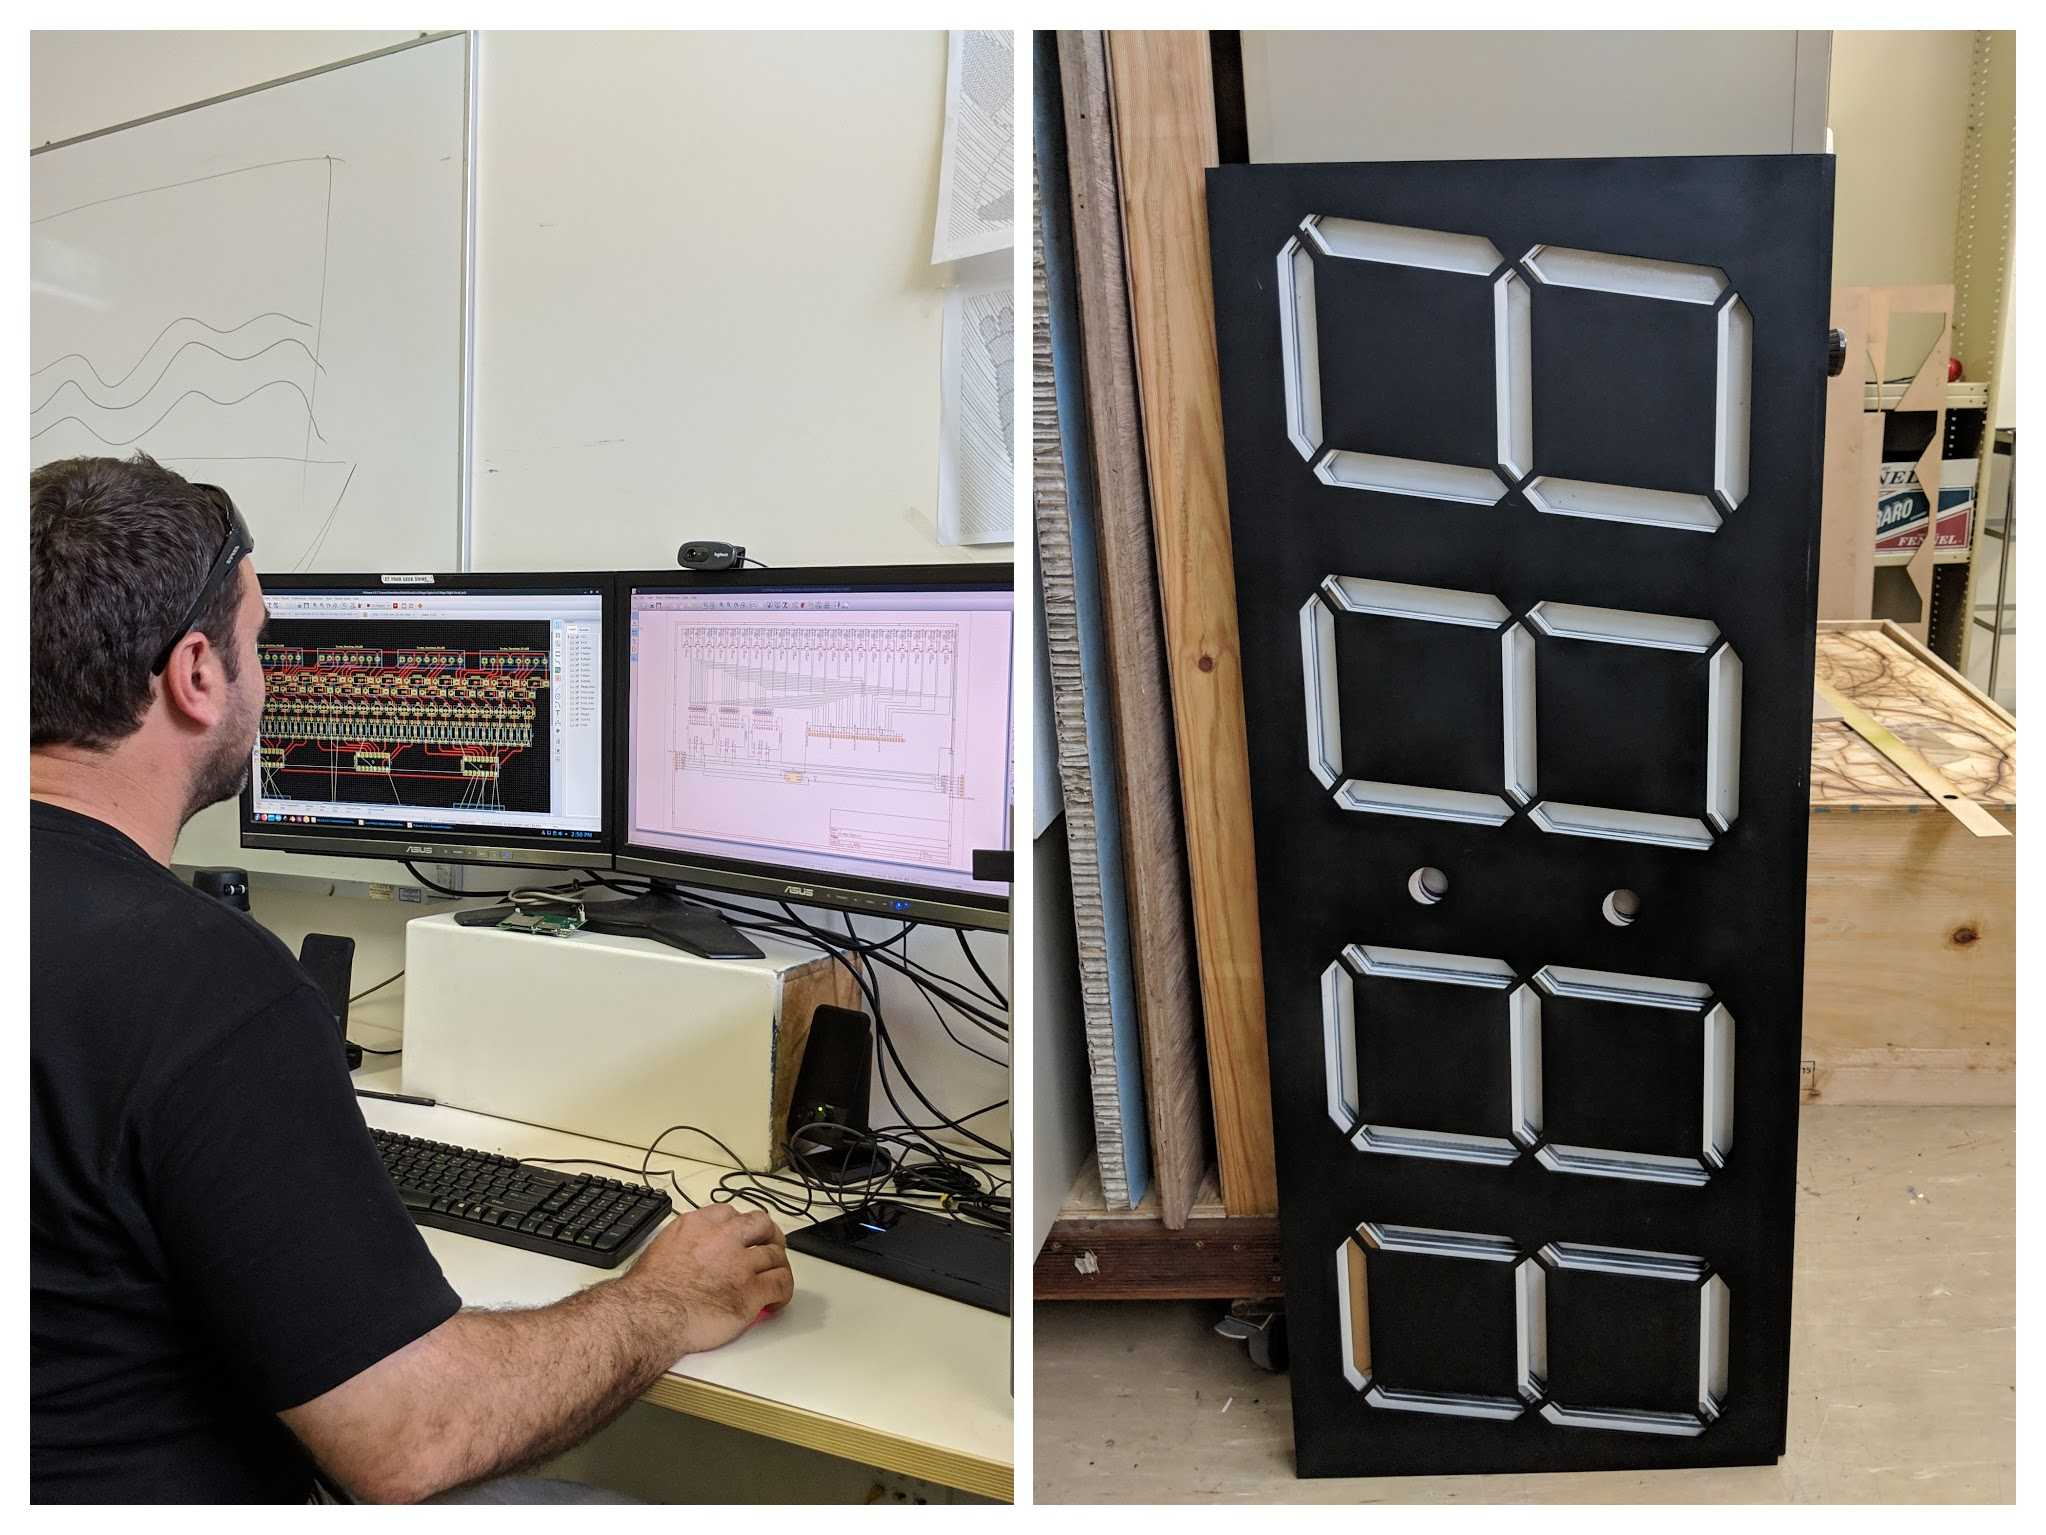 Matt working on a LED clock printed circuit board design in KiCad and a picture of the large clock.